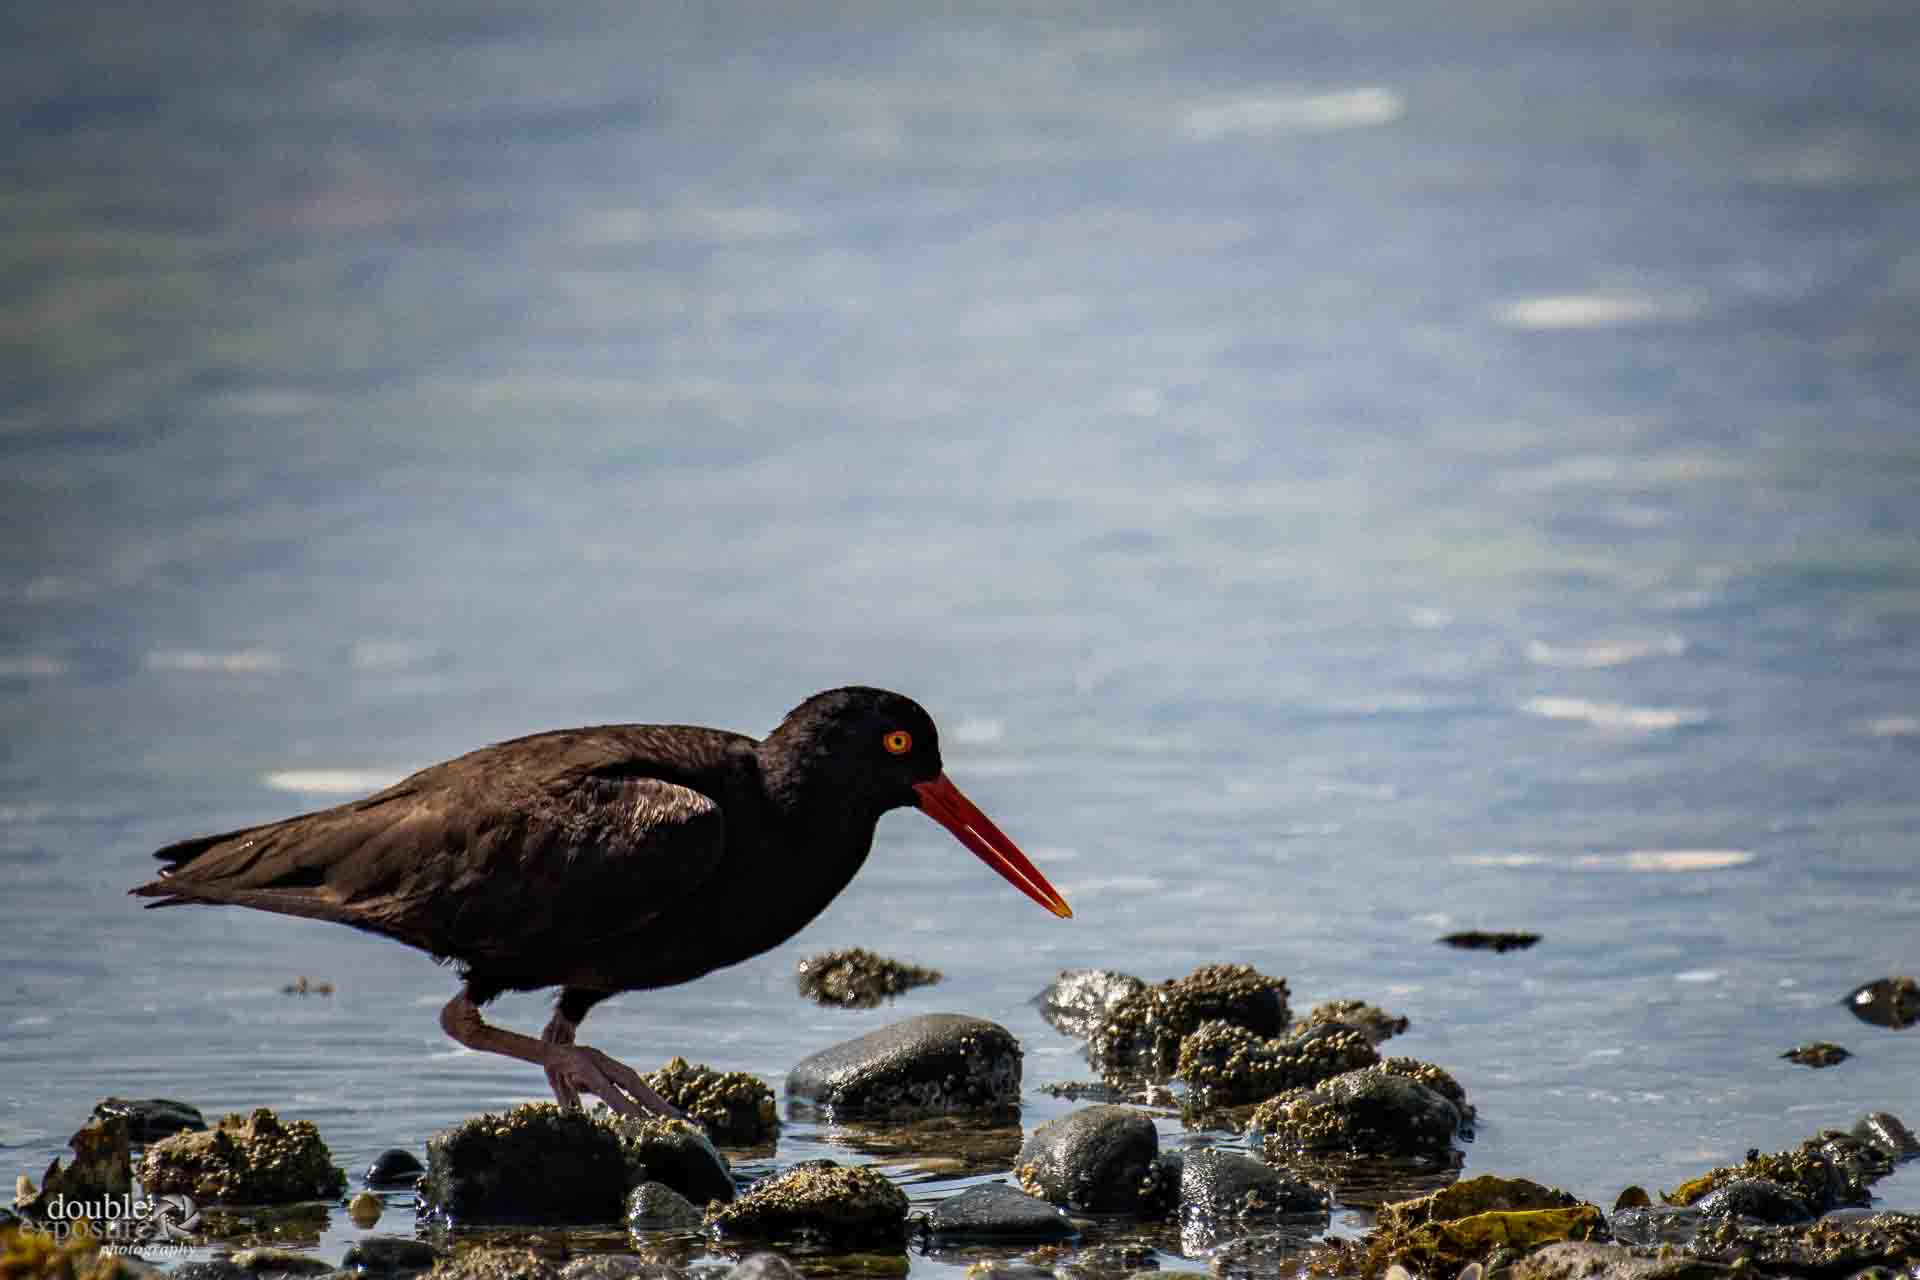 Oyster catcher at work